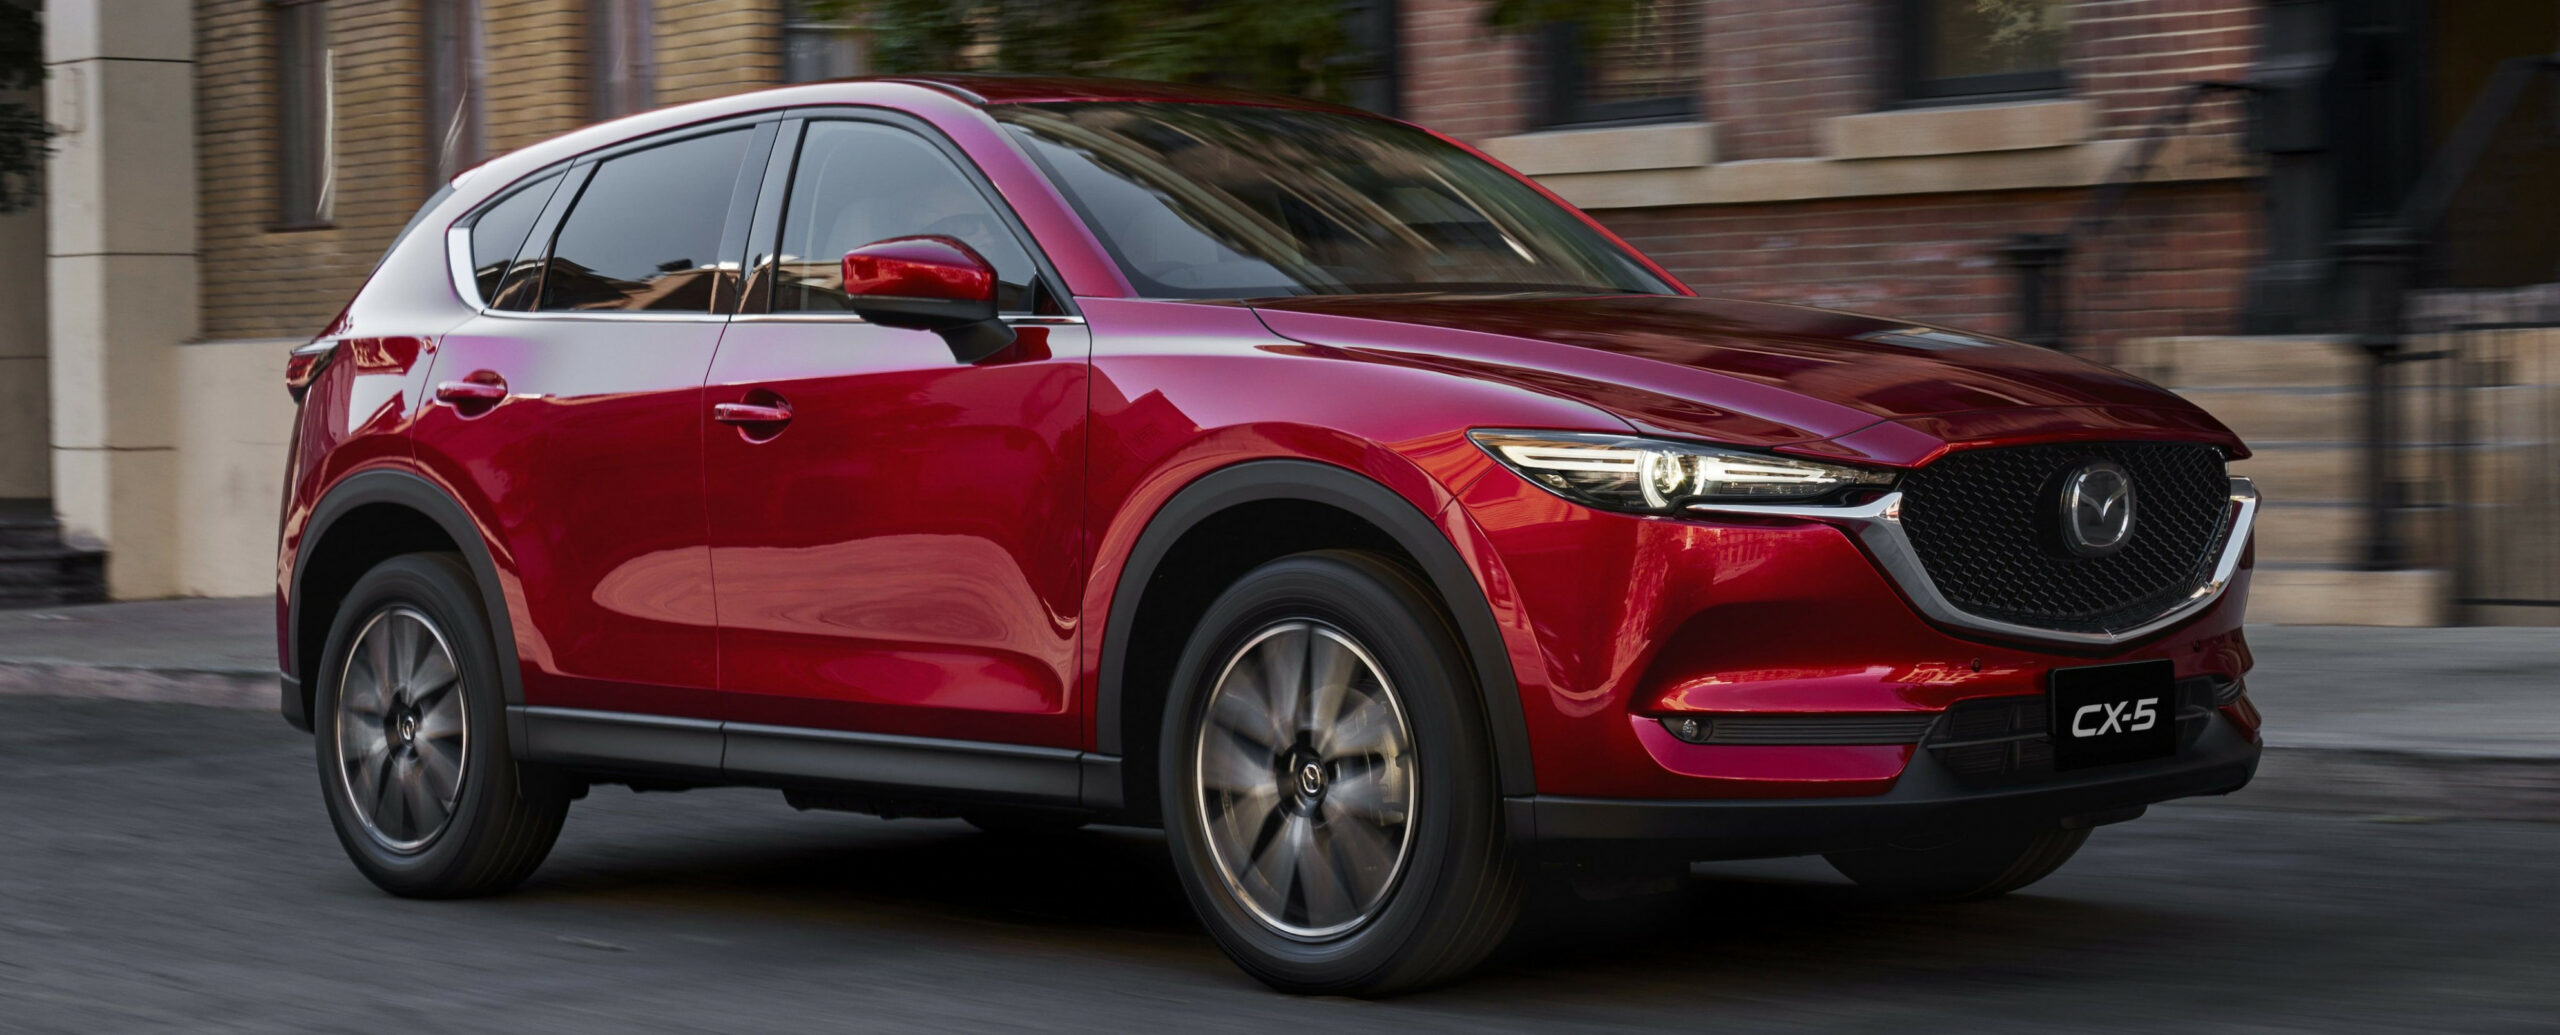 8+ 8 mazda near me Specs and Review - 2020 mazda near me